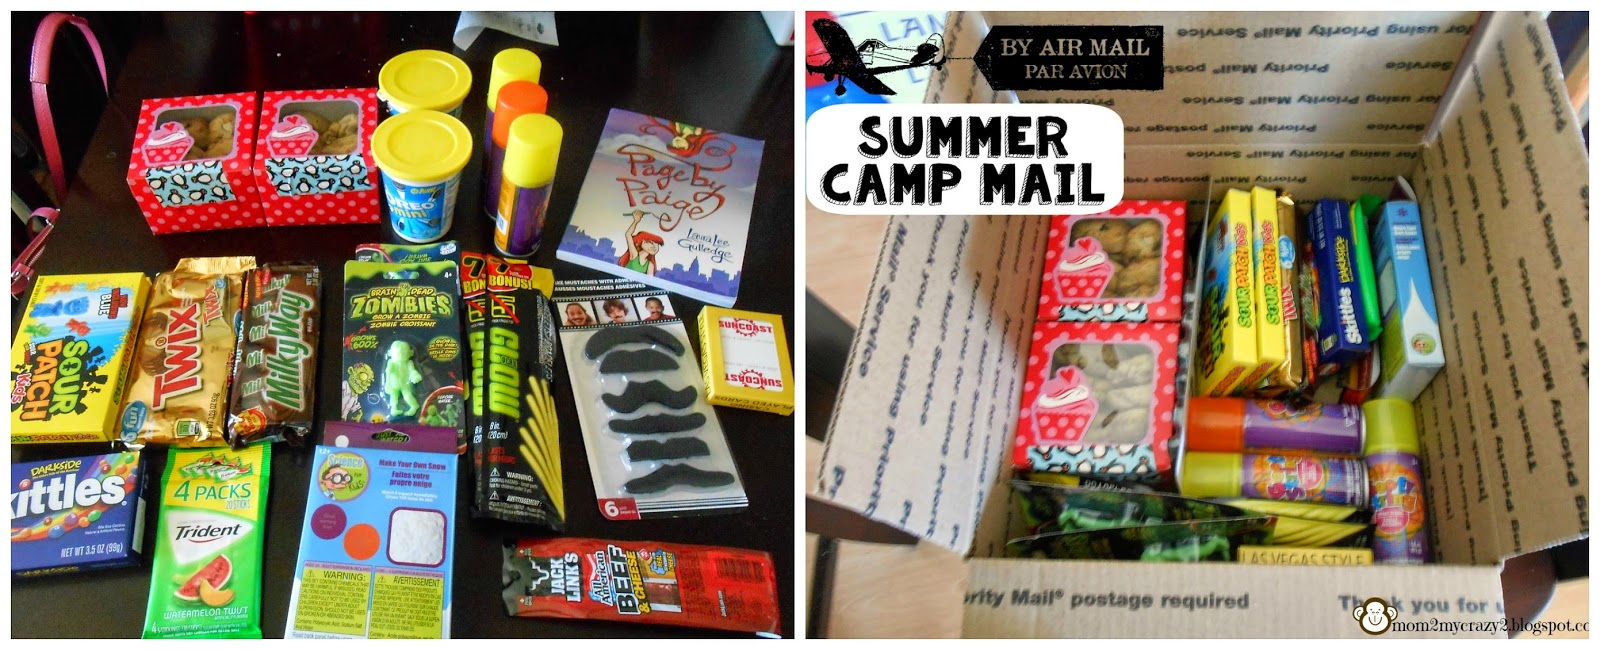 running away? i'll help you pack.: summer camp care package in the mail